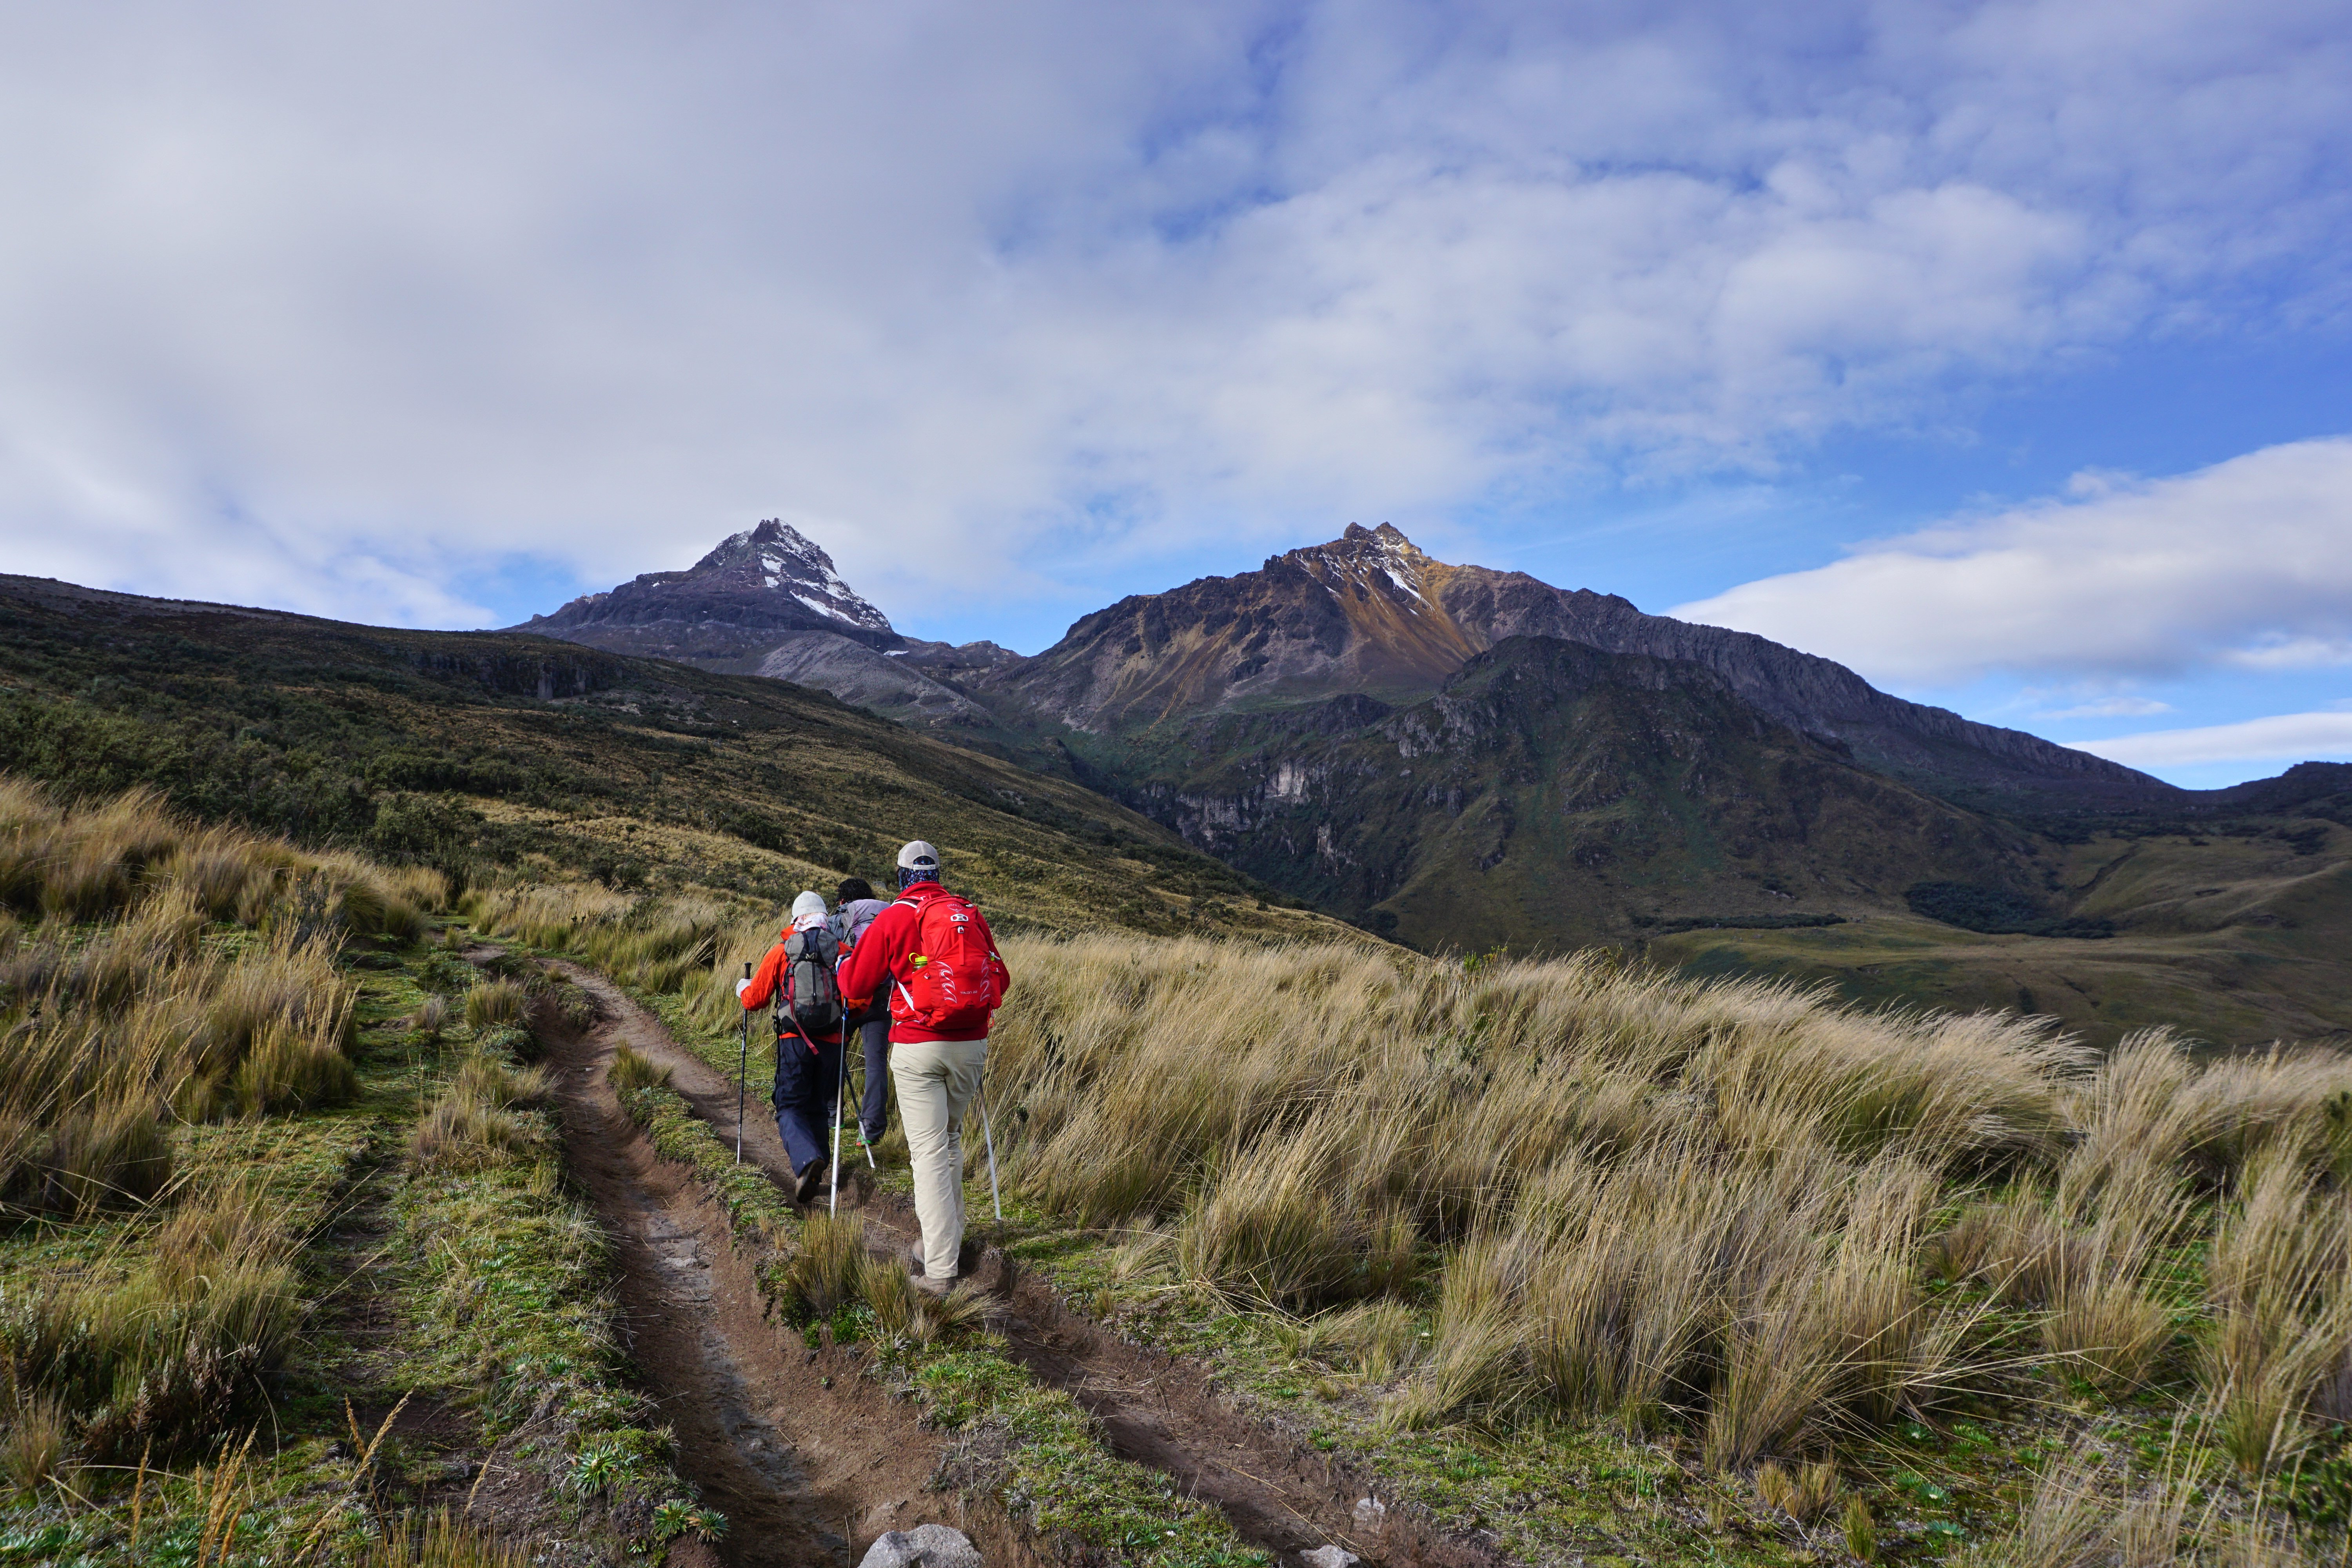 Scroll Saw Wilderness Falling Up Exploring Volcanoes In Ecuador Osprey Packs Experience Geoff Edgar And El Gato Starting The Hike To Illiniza Peaks We Summited North Right Peak A Blanket Of Clouds